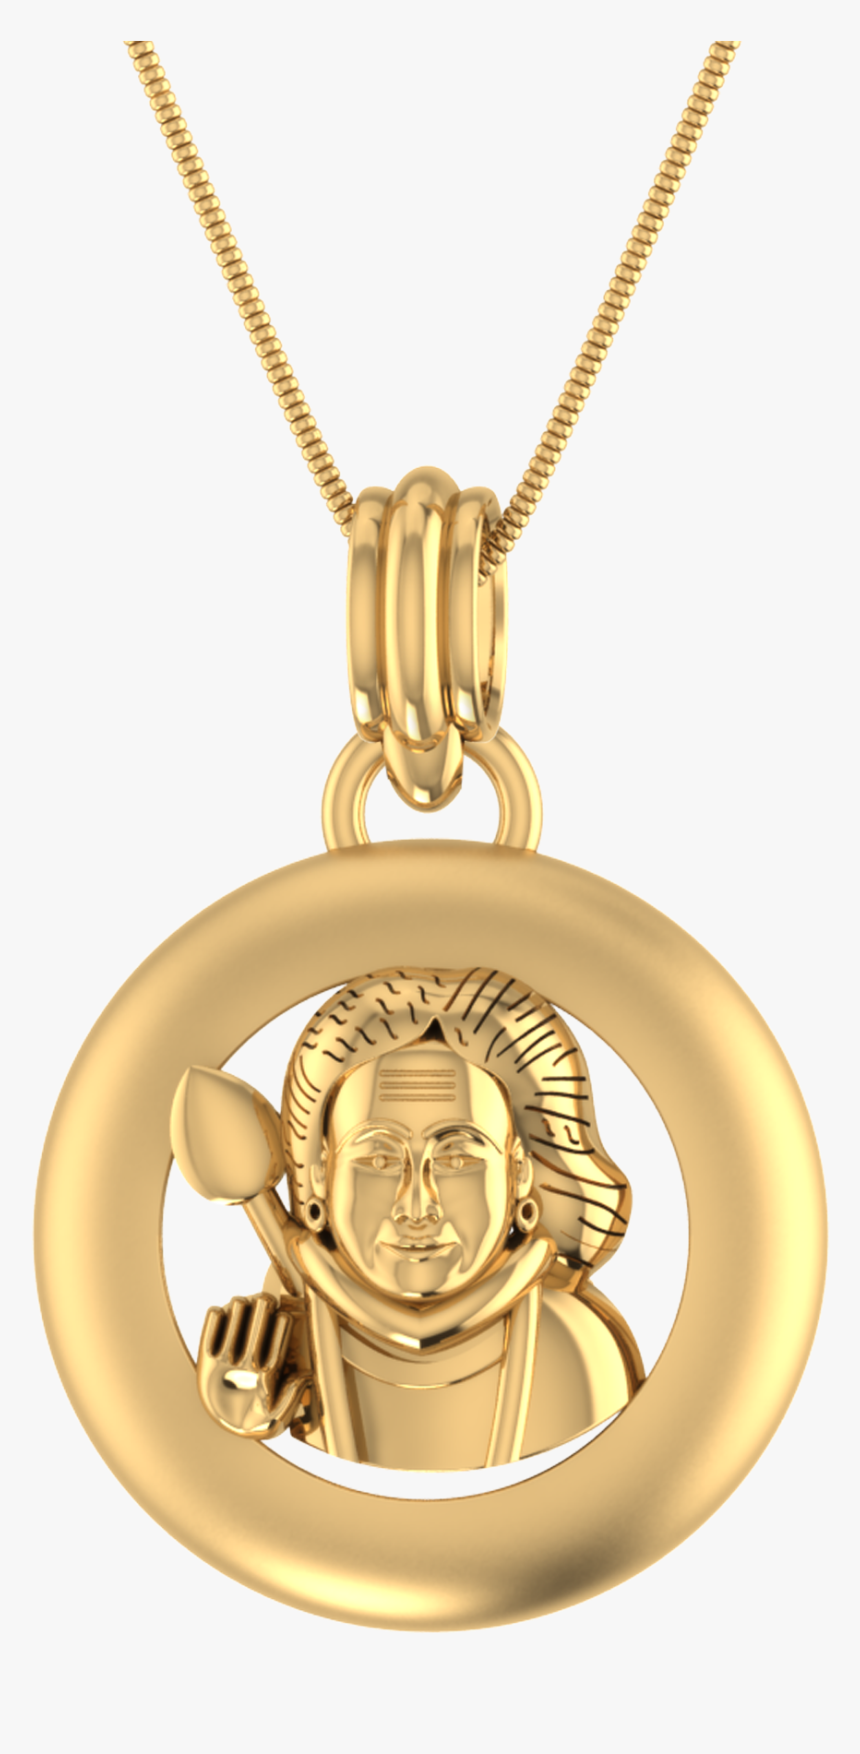 Virgin Mary With Baby Jesus Gold Pendant, HD Png Download, Free Download